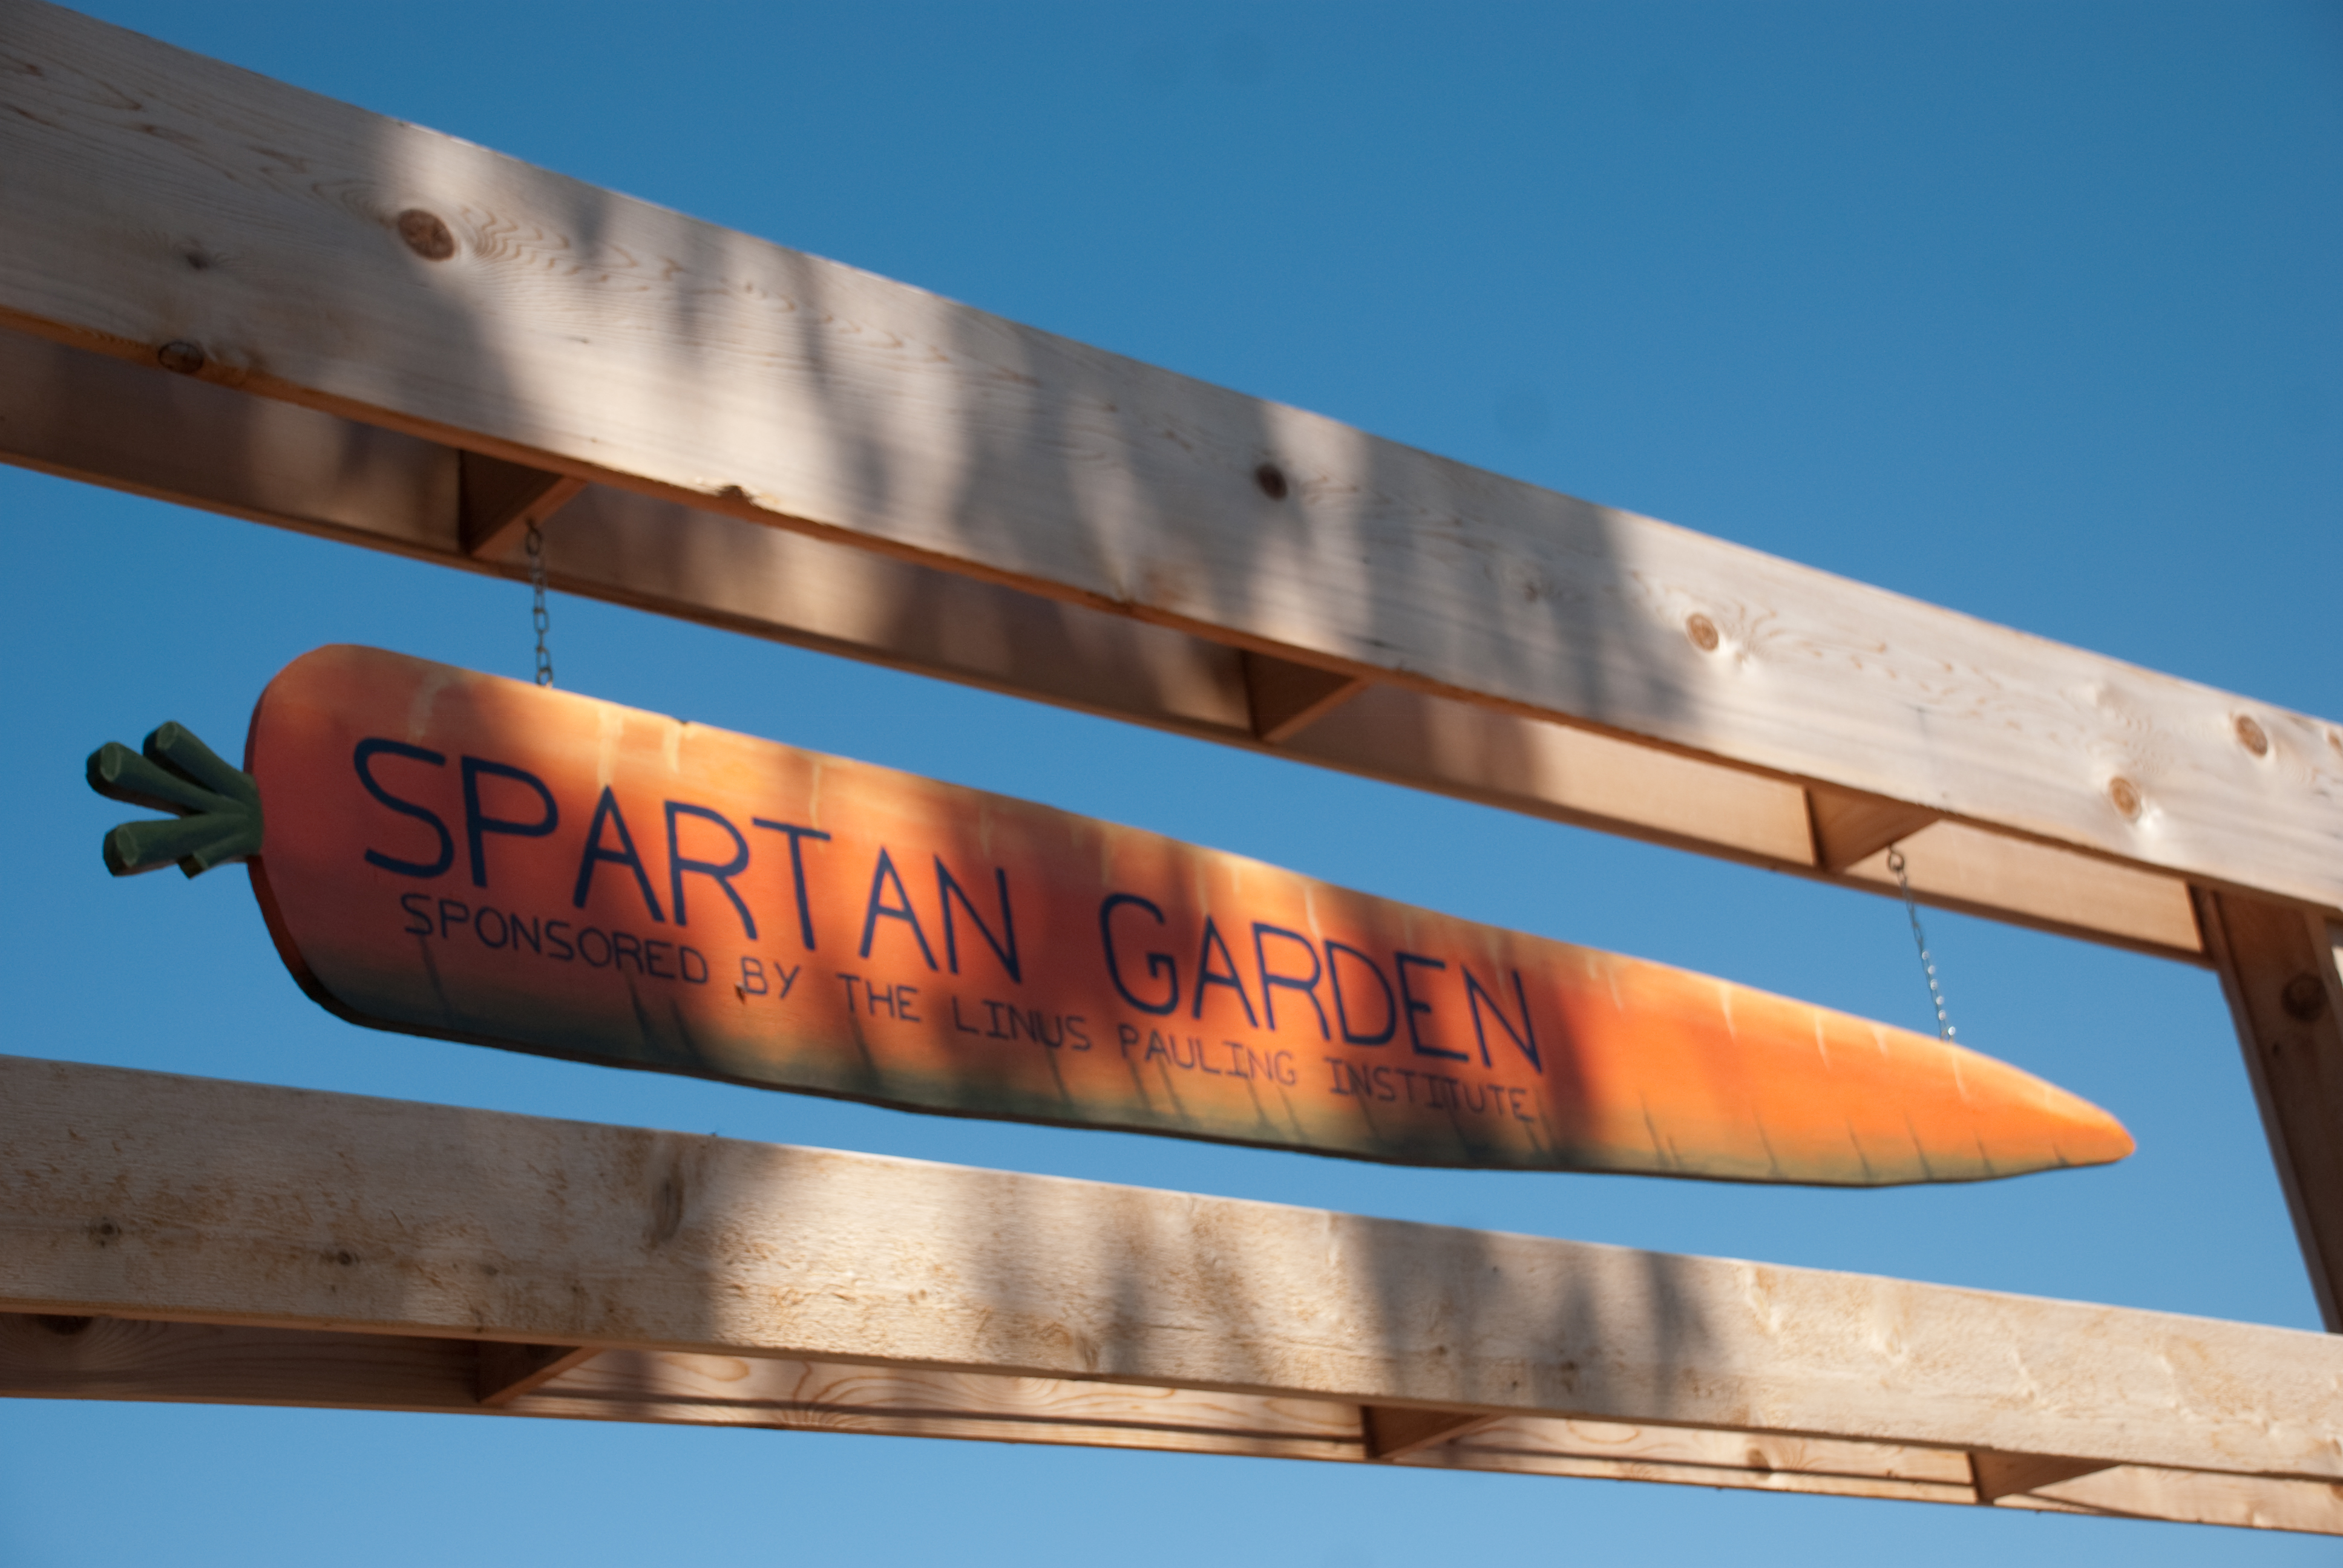 Background of Spartan Garden